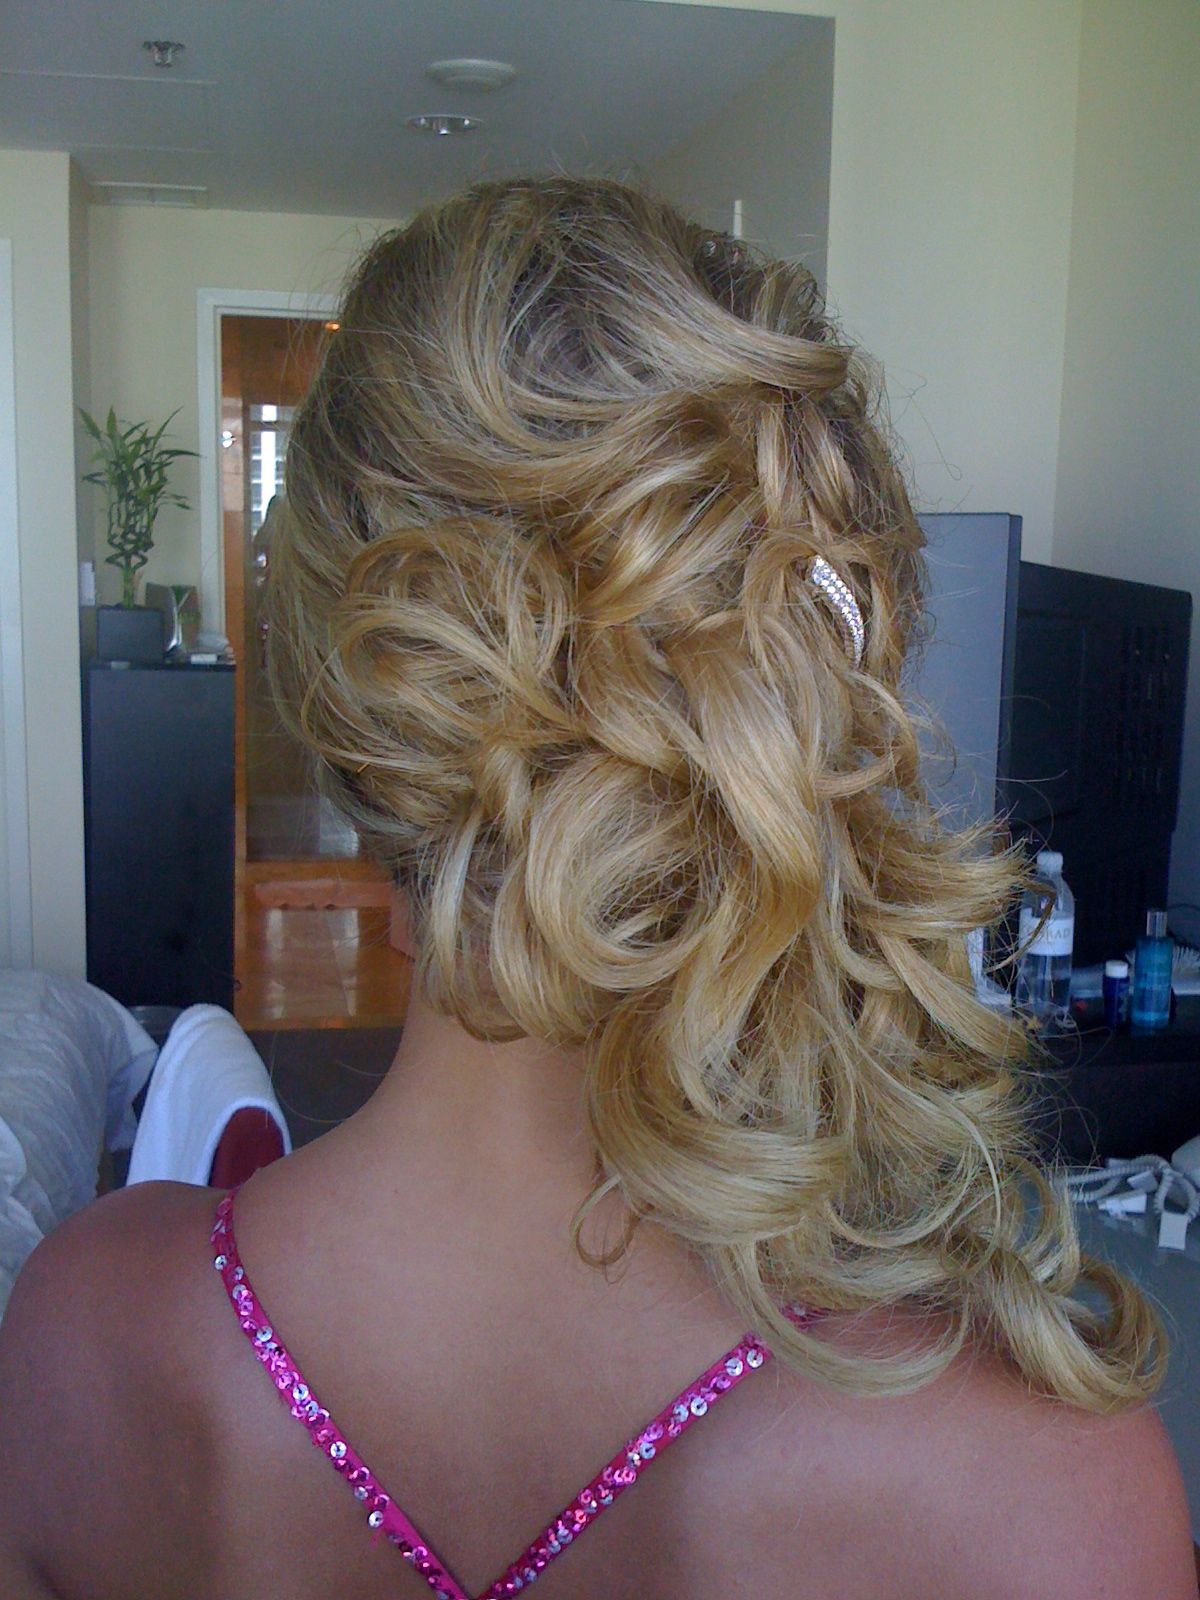 Hair To One Side This Look Combines The Best Of Both And